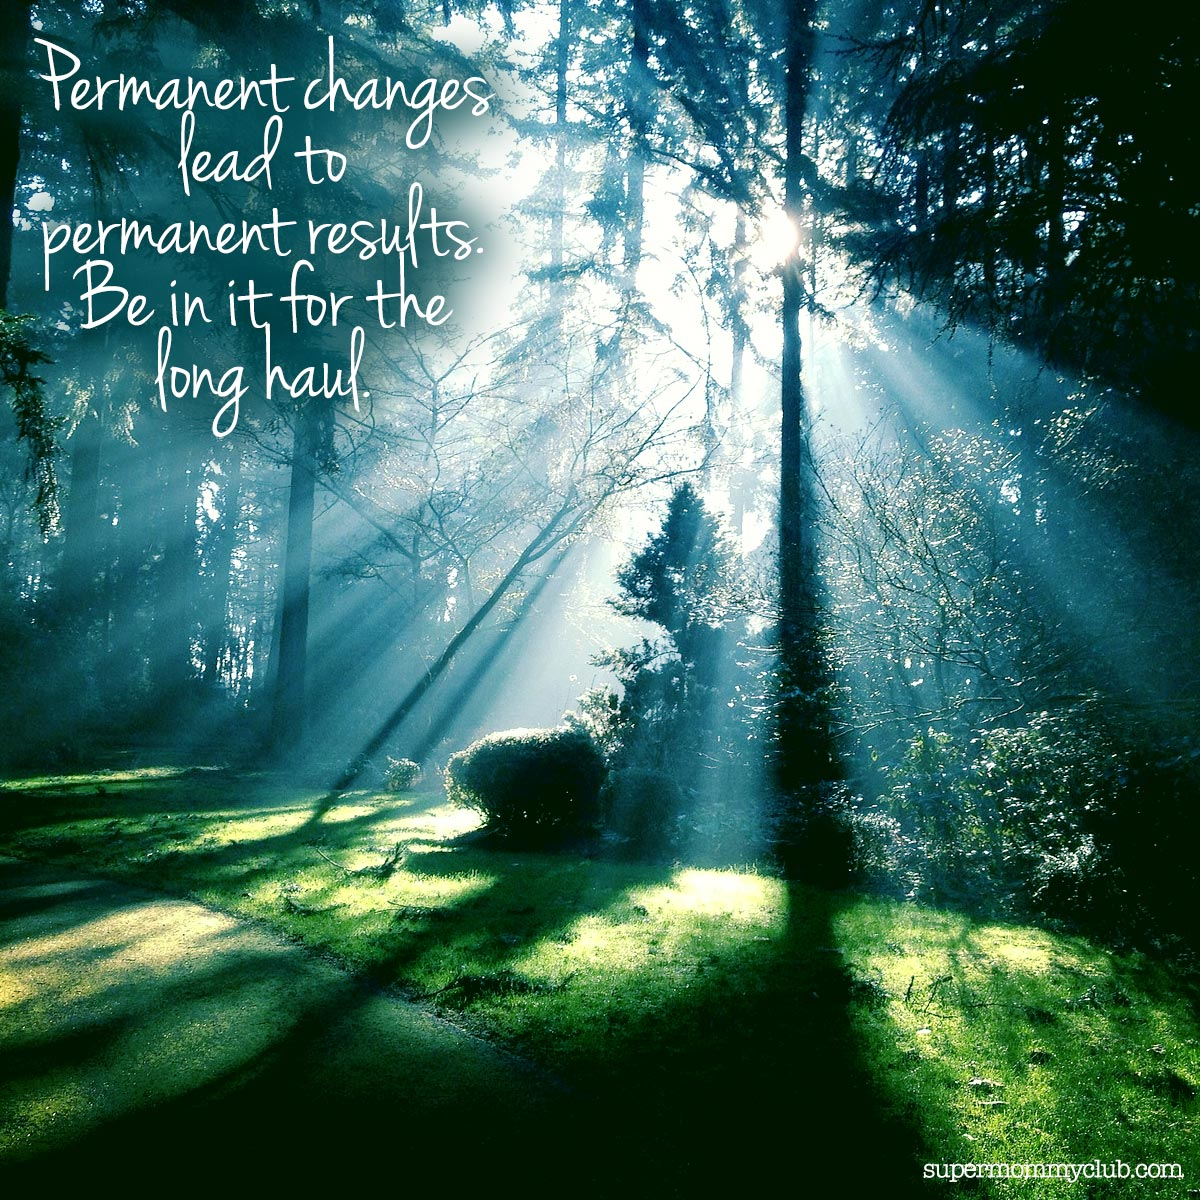 Permanent changes  lead to permanent results. Be in it for the  long haul.